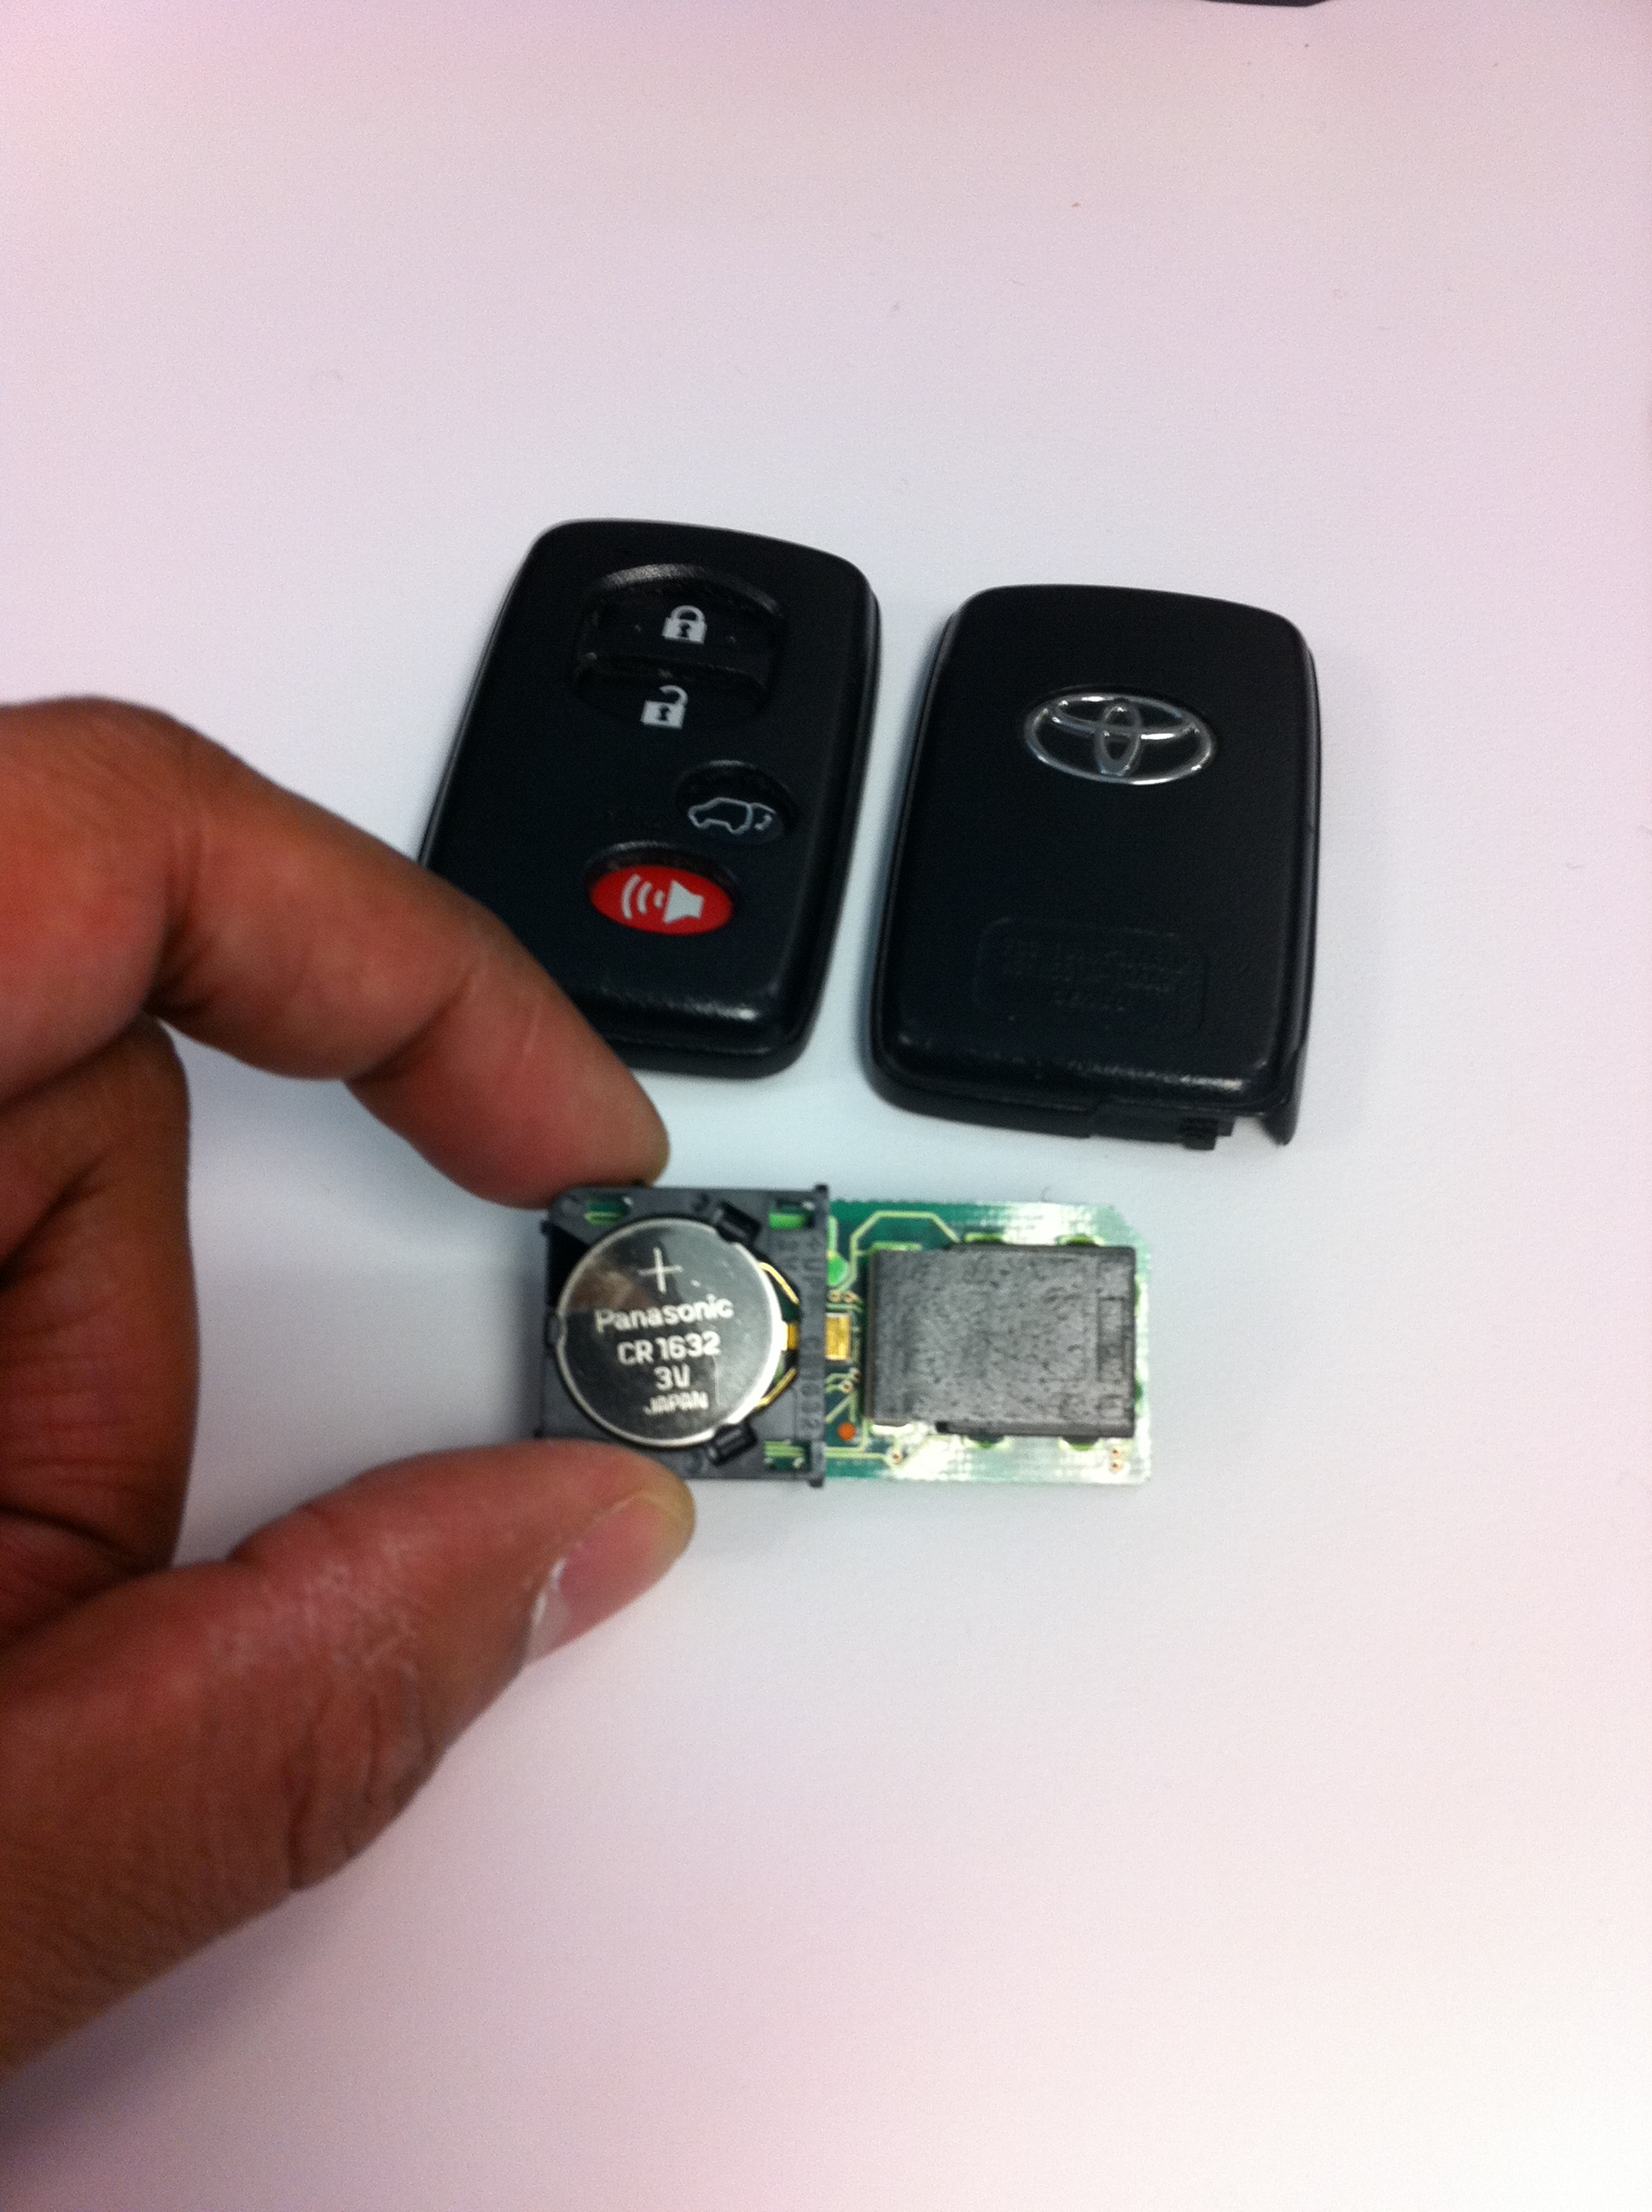 2000 lexus es300 key fob battery | How to Reprogram a Lexus Key Fob